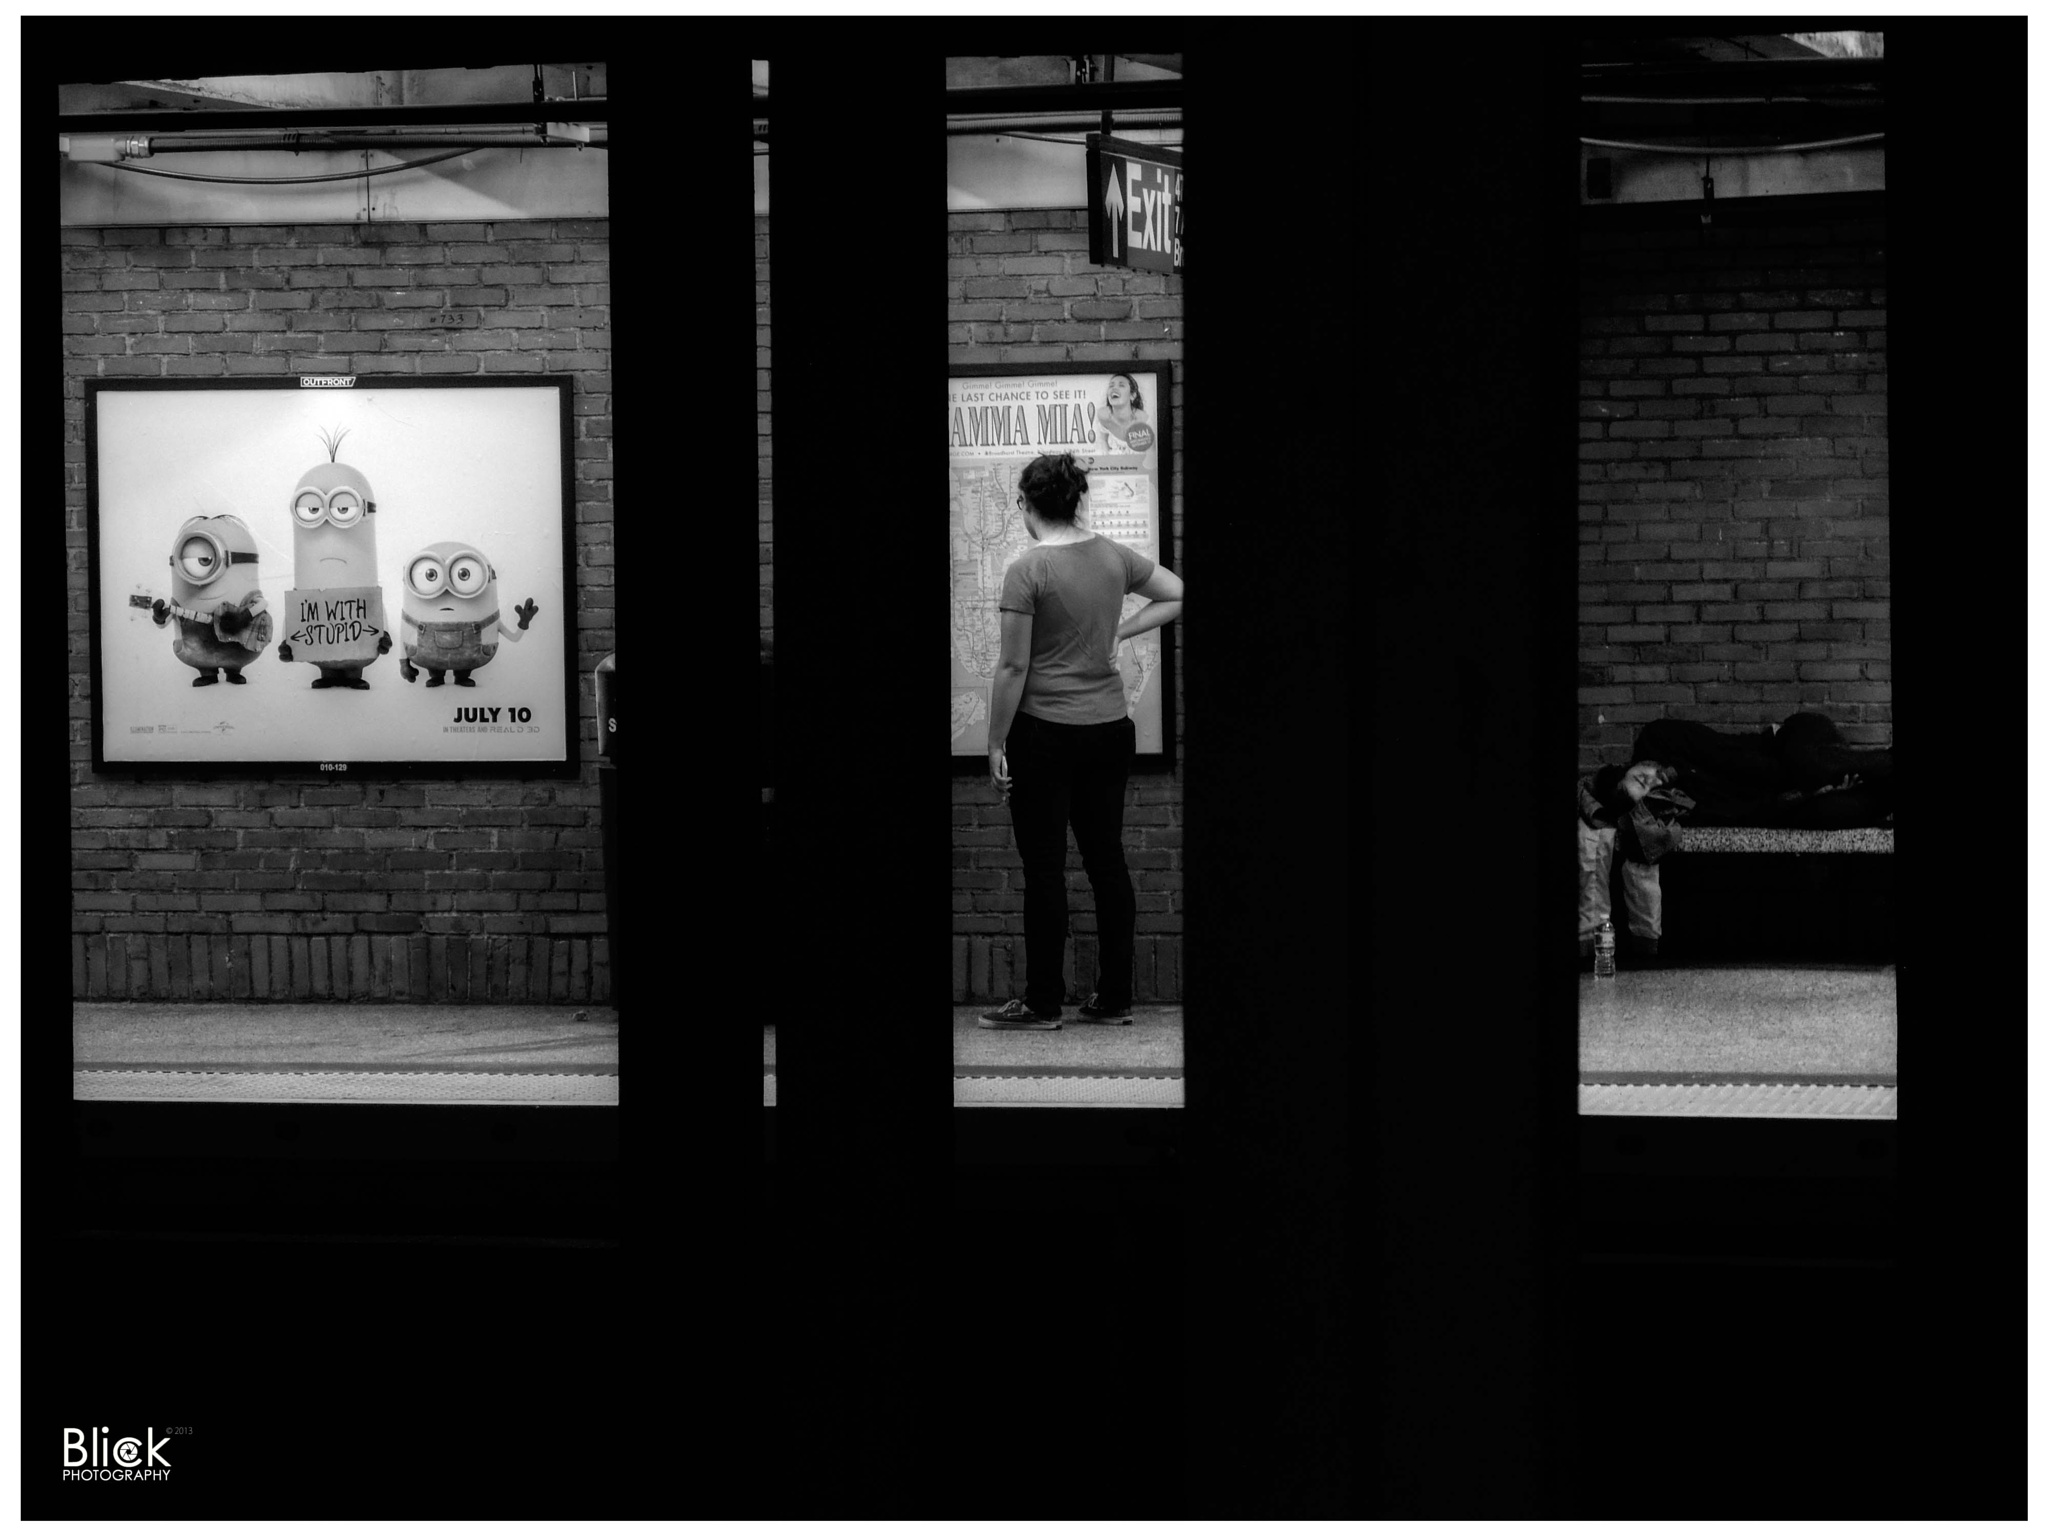 NYC Subway 2015 by Florian Crone